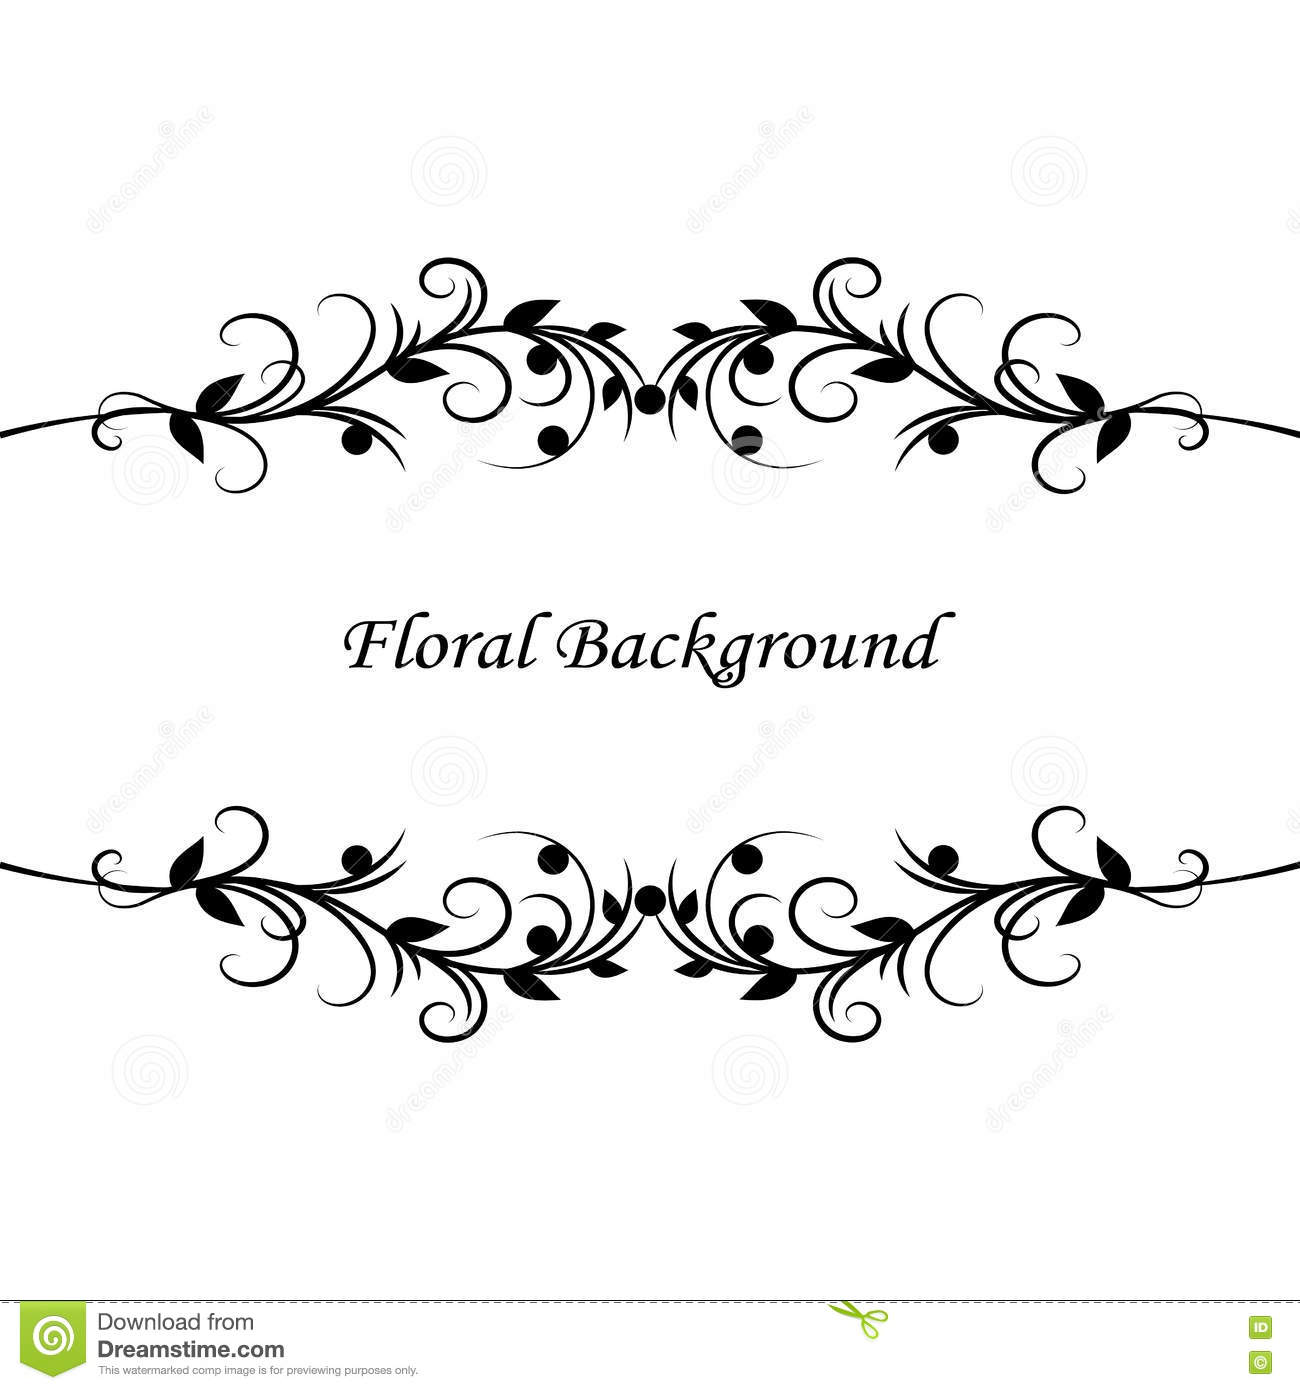 Simple Floral Background In Black And White Illustration 75328124